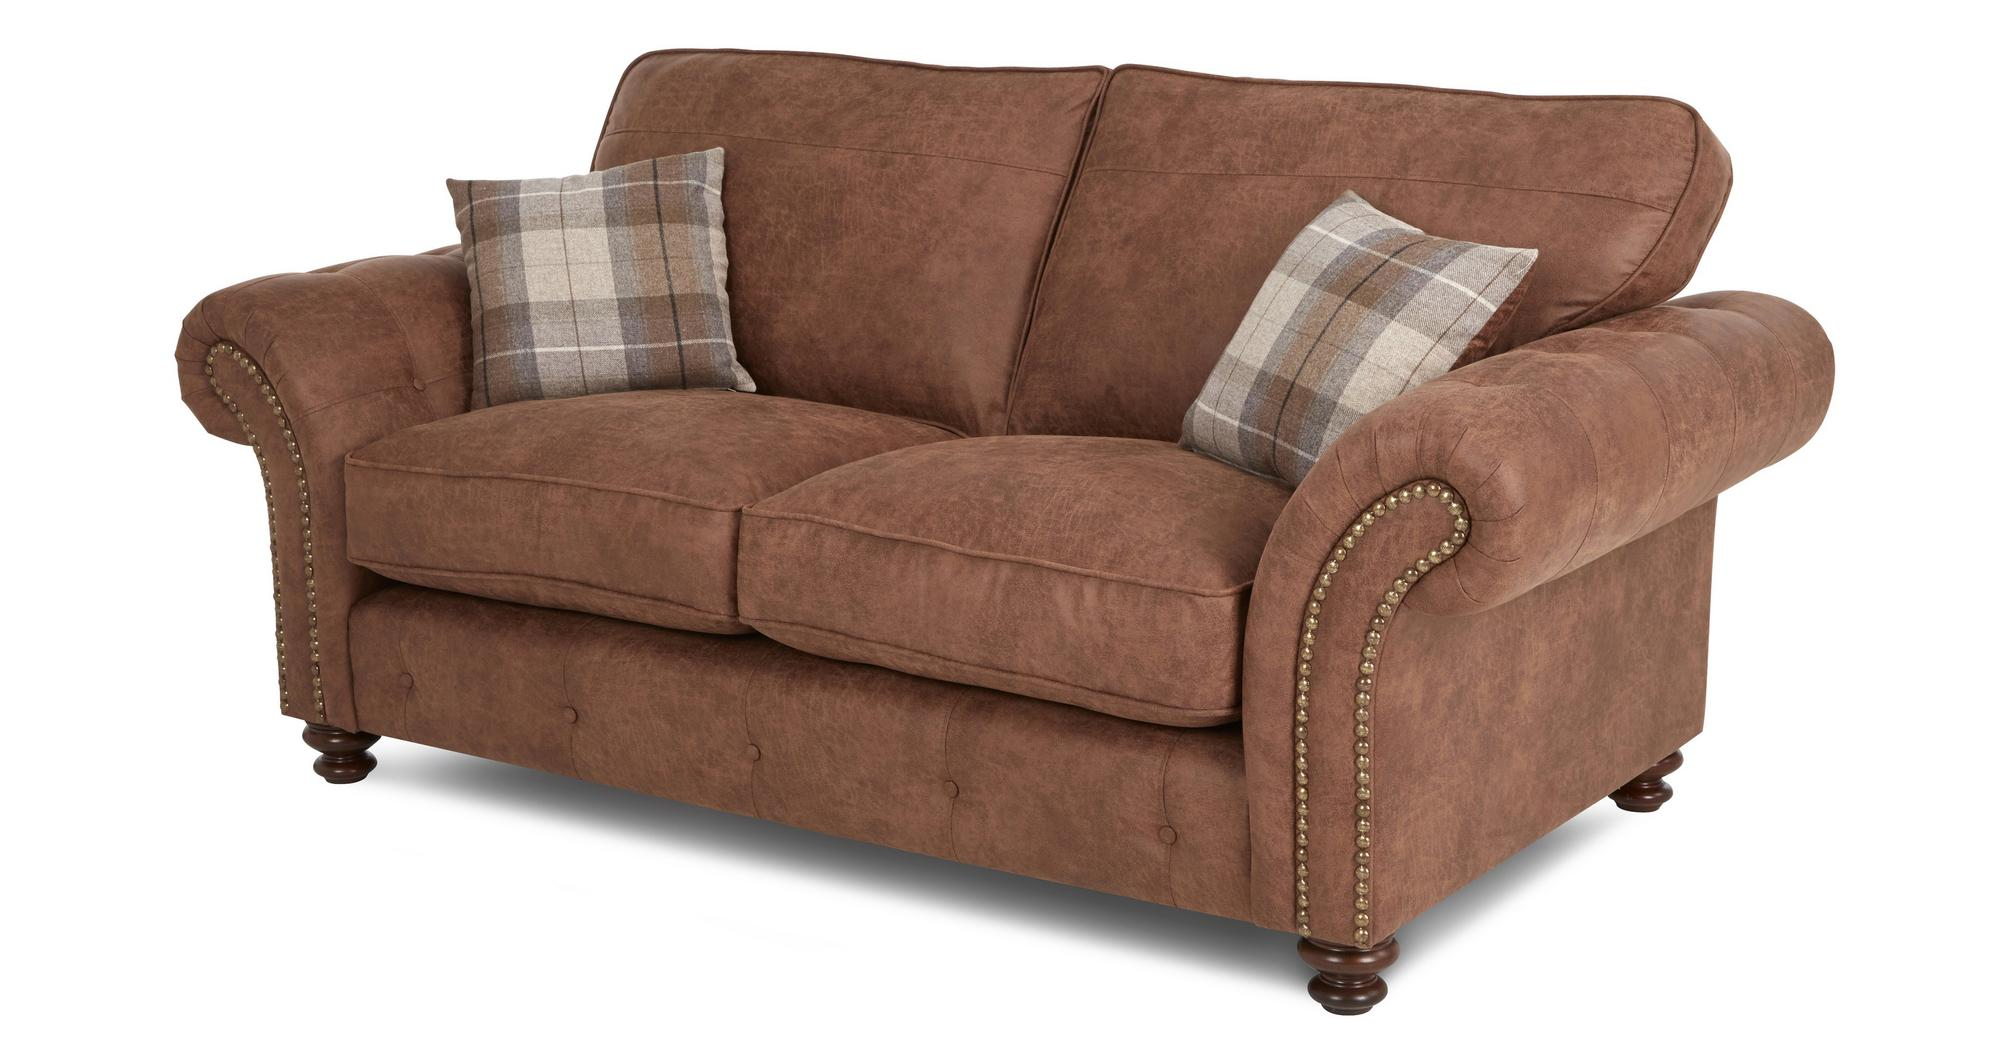 Dfs Oakland Brown Fabric 4 Seater 2 Seater Accent Chair